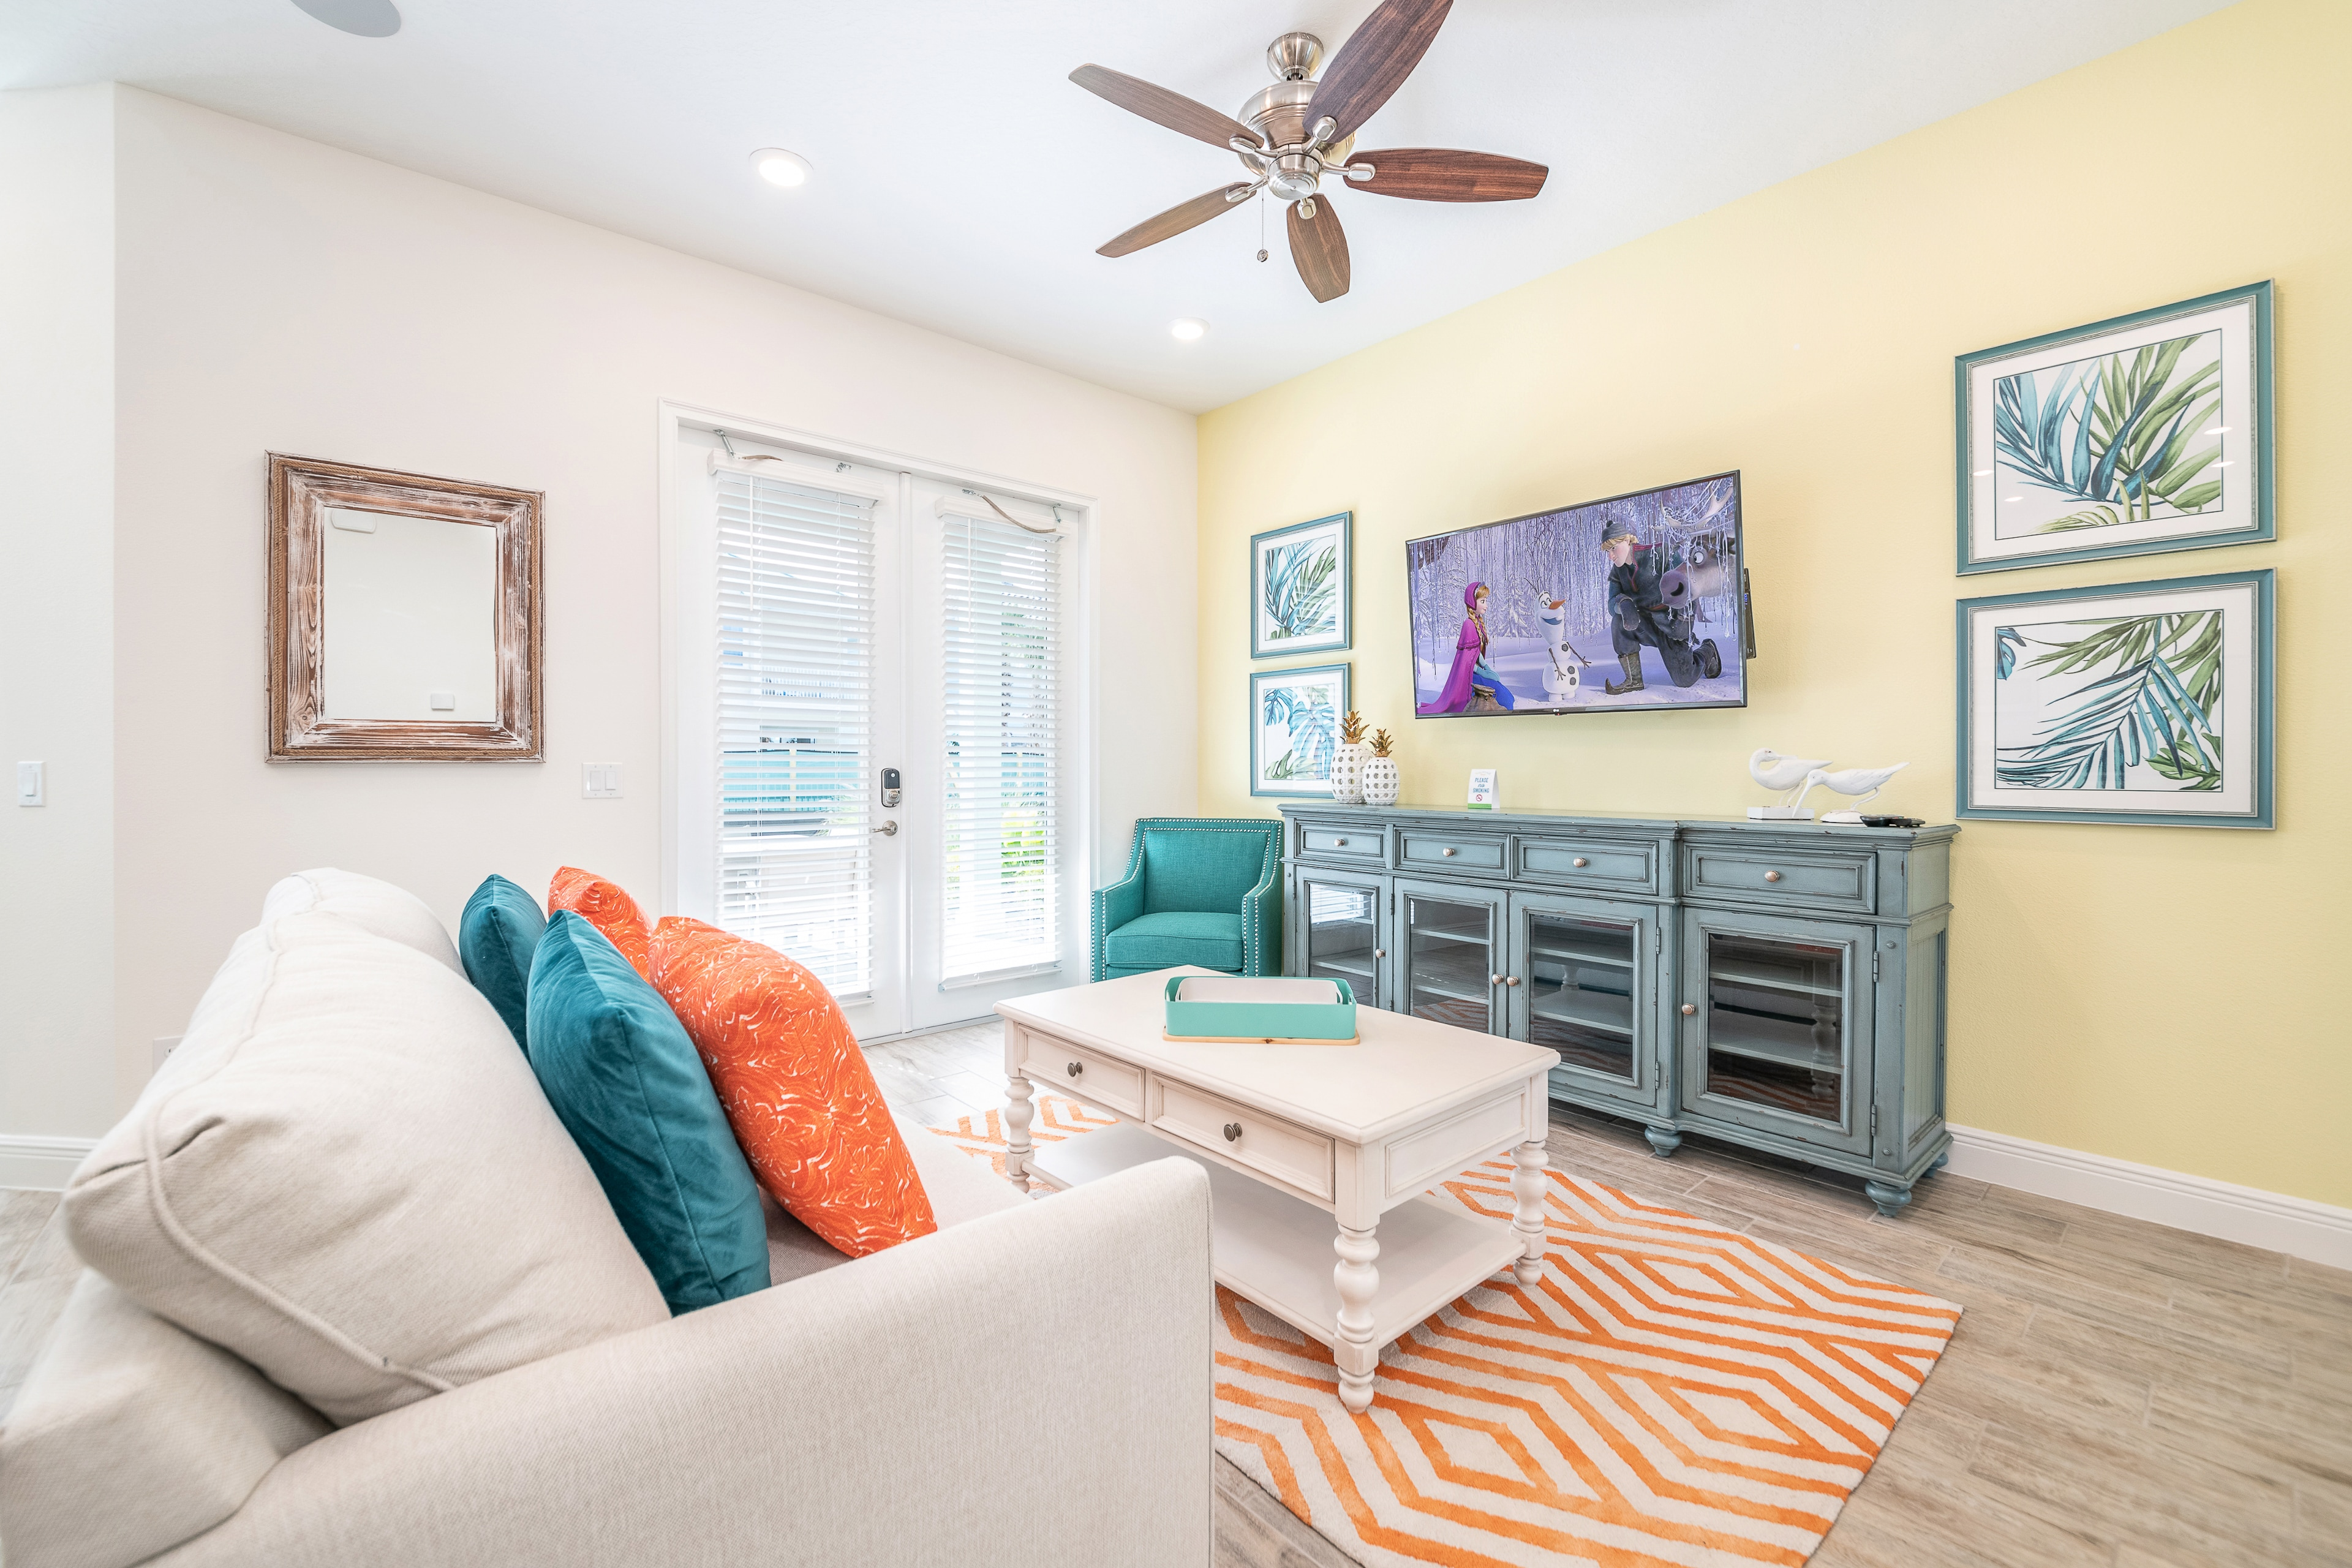 Property Image 2 - Bright Cottage near Disney with Daily Housekeeping